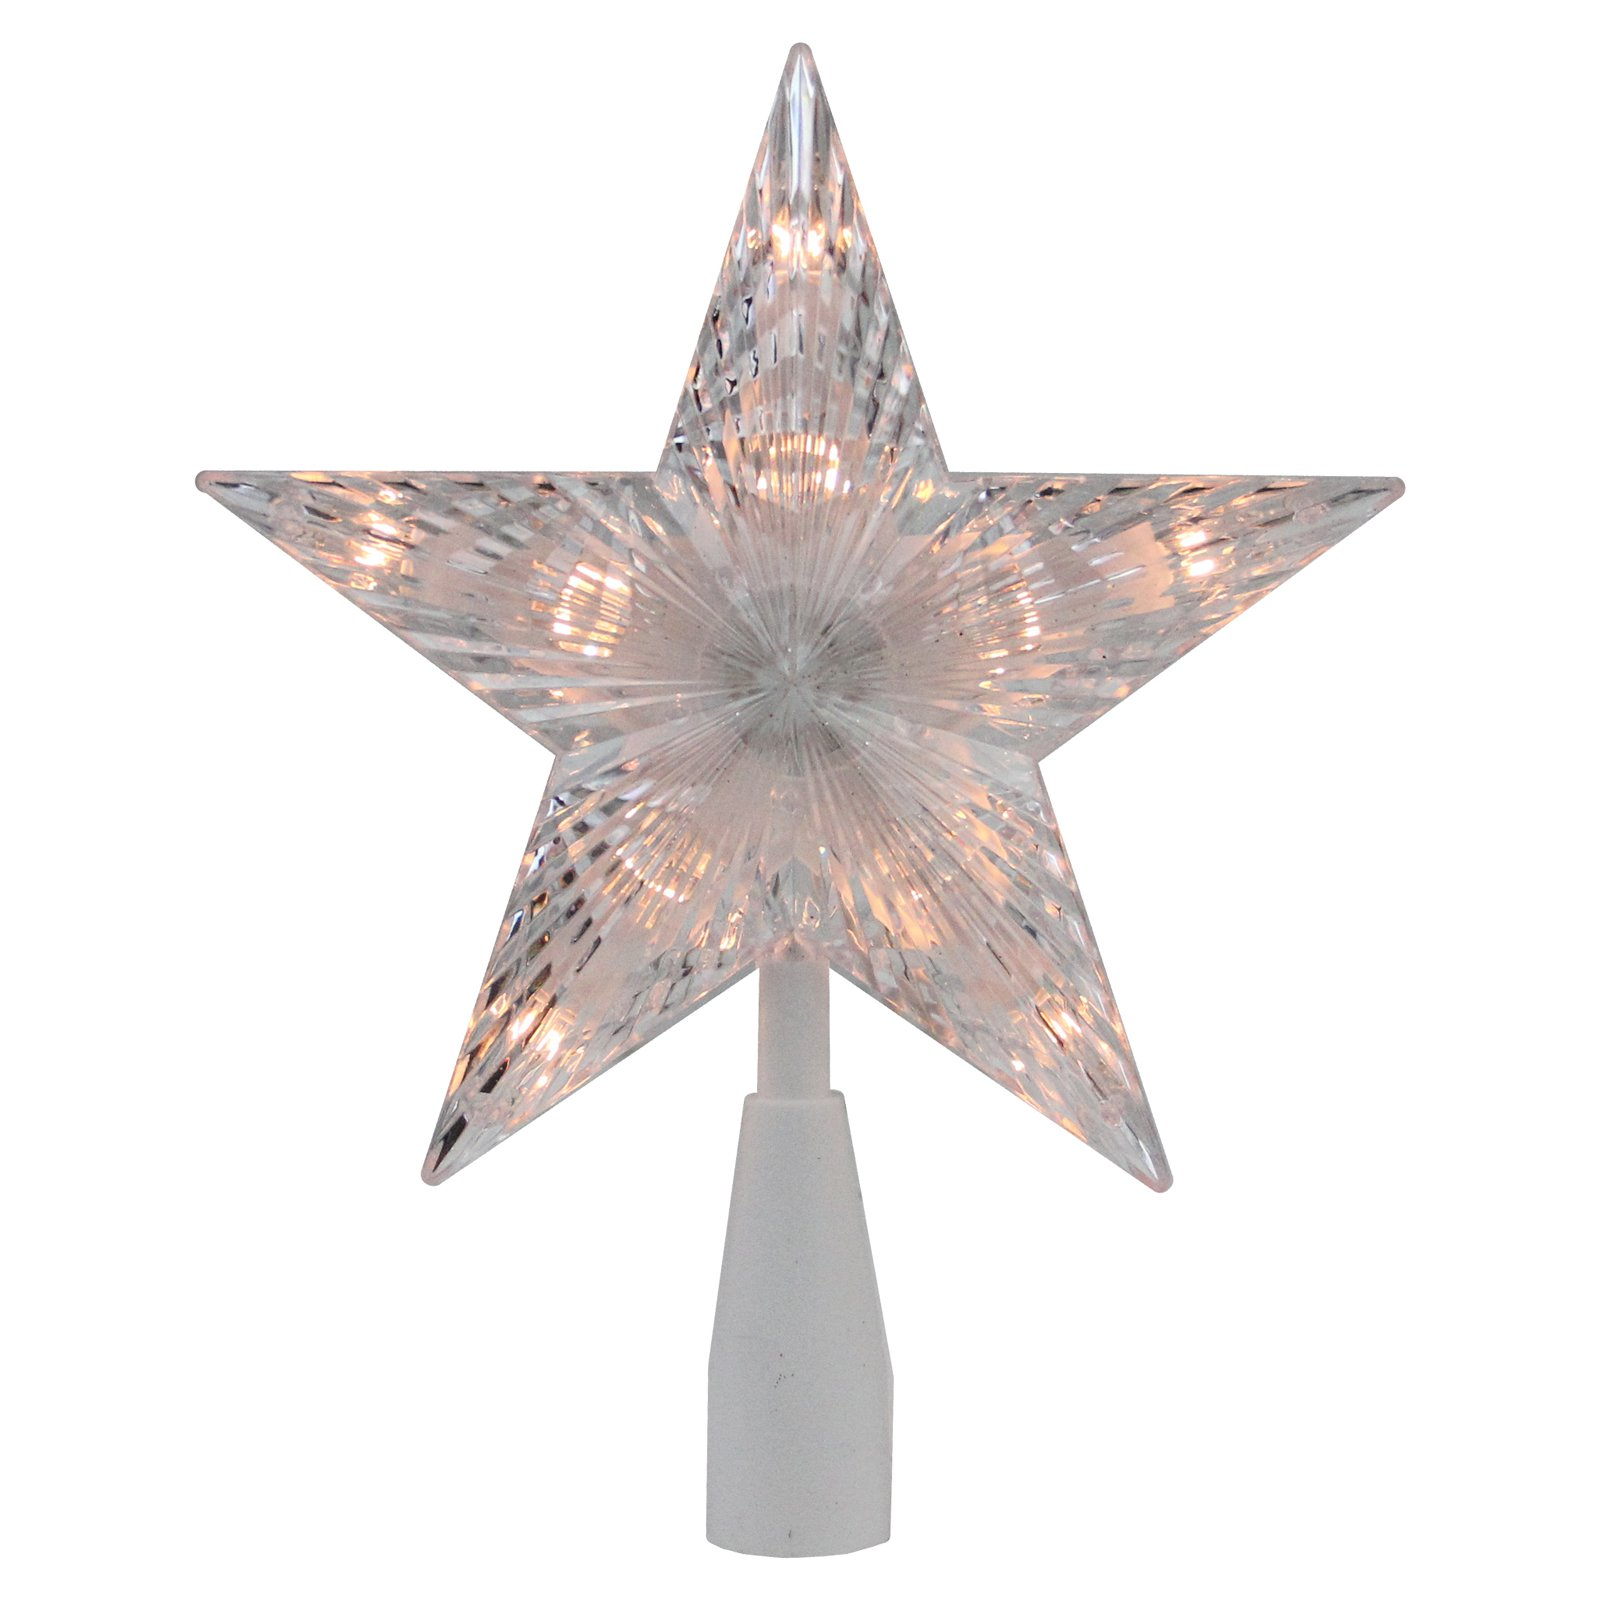 Northlight 7 in. Traditional Star Lighted Christmas Tree Topper